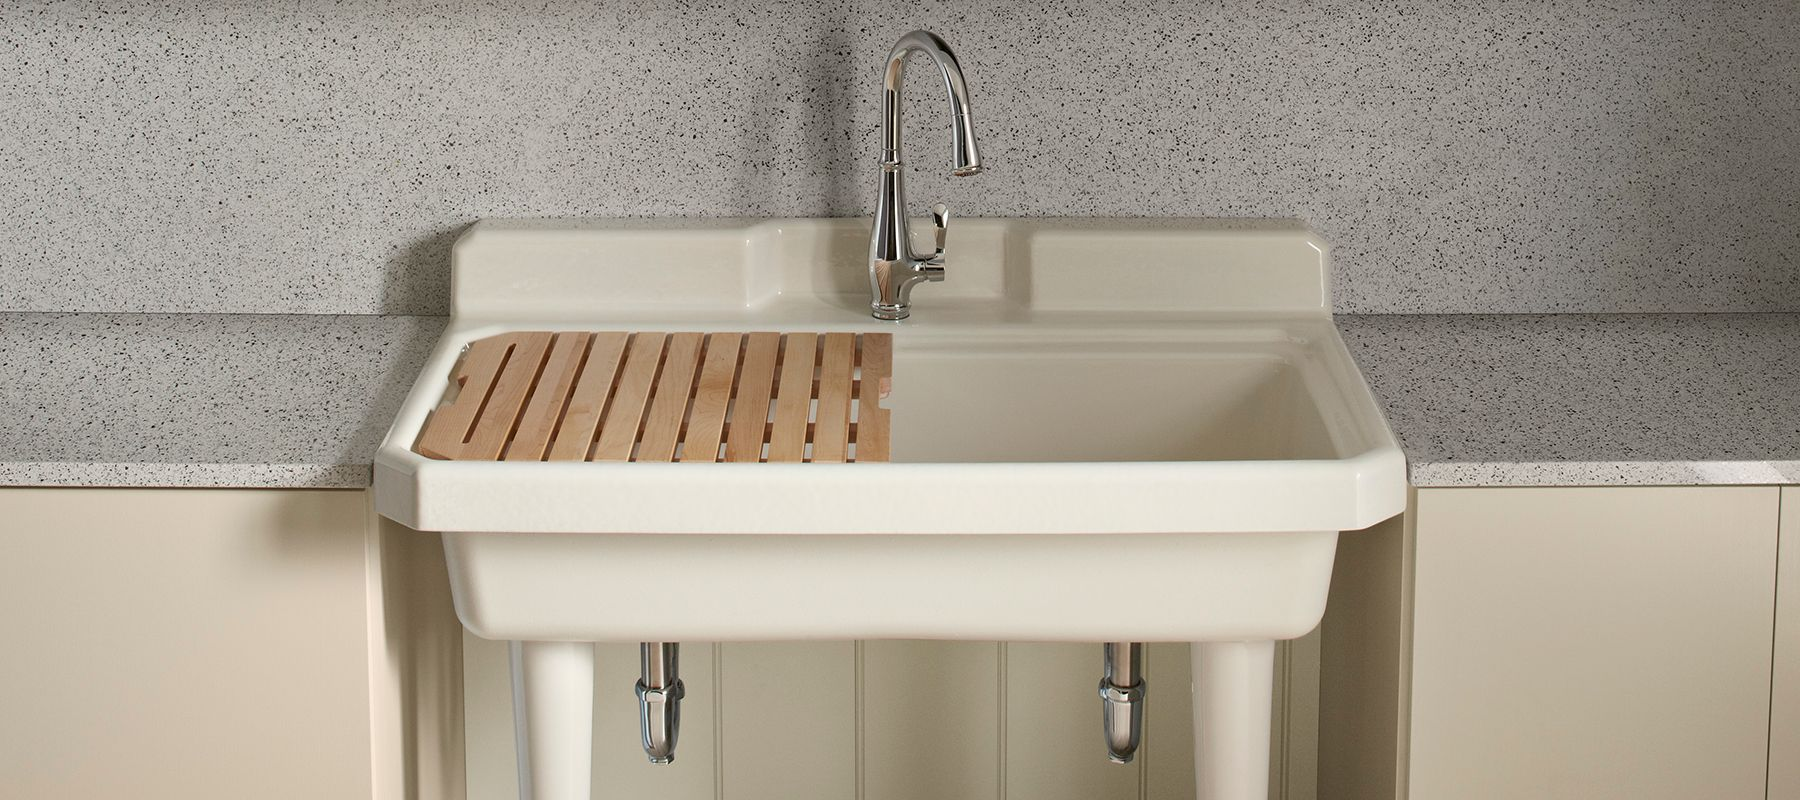 Utility sinks kitchen kohler laundry room reborn workwithnaturefo